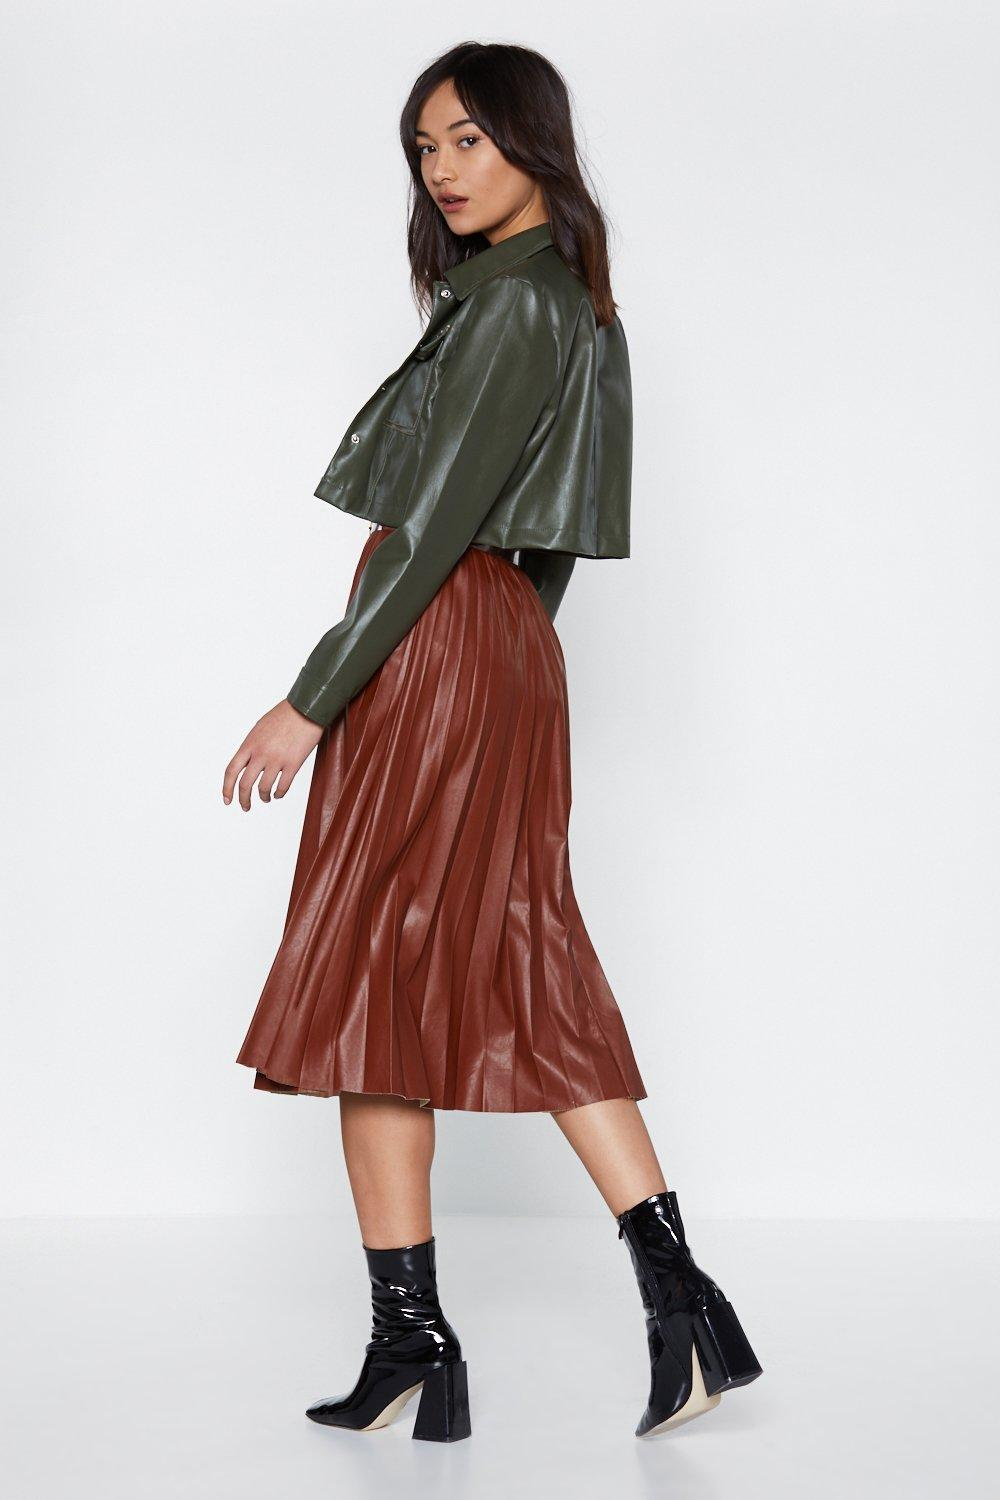 2b2e9d2baa Pleat Moves Faux Leather Skirt | Shop Clothes at Nasty Gal!